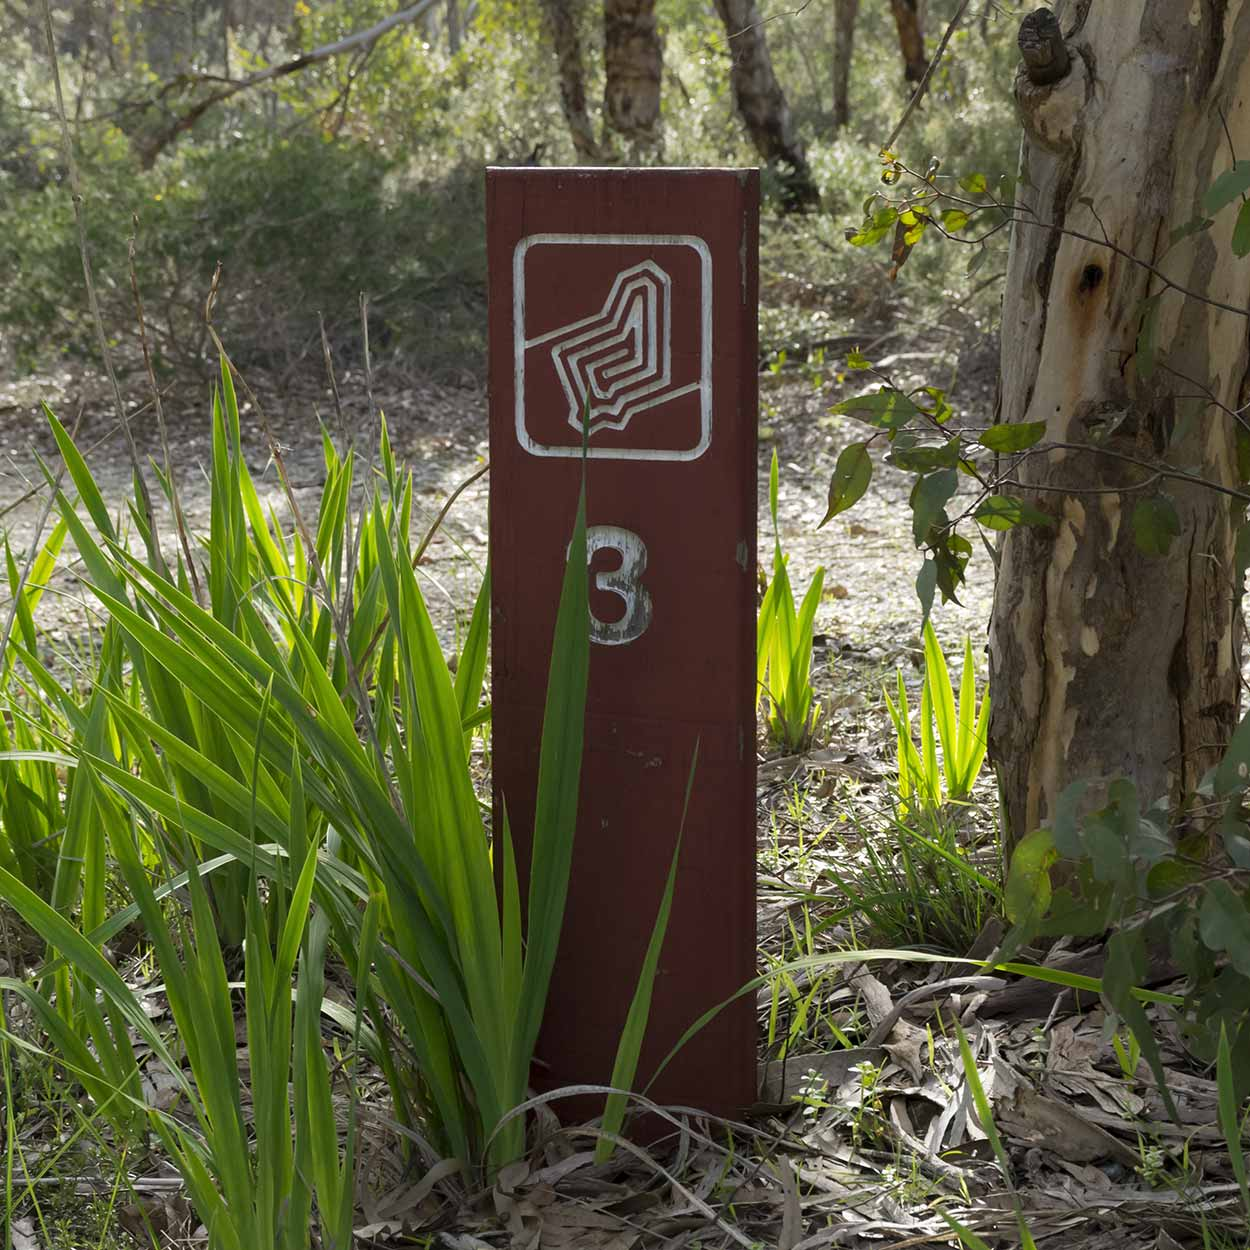 Signage for the Kattamorda Trail, Korung National Park, Perth, Western Australia